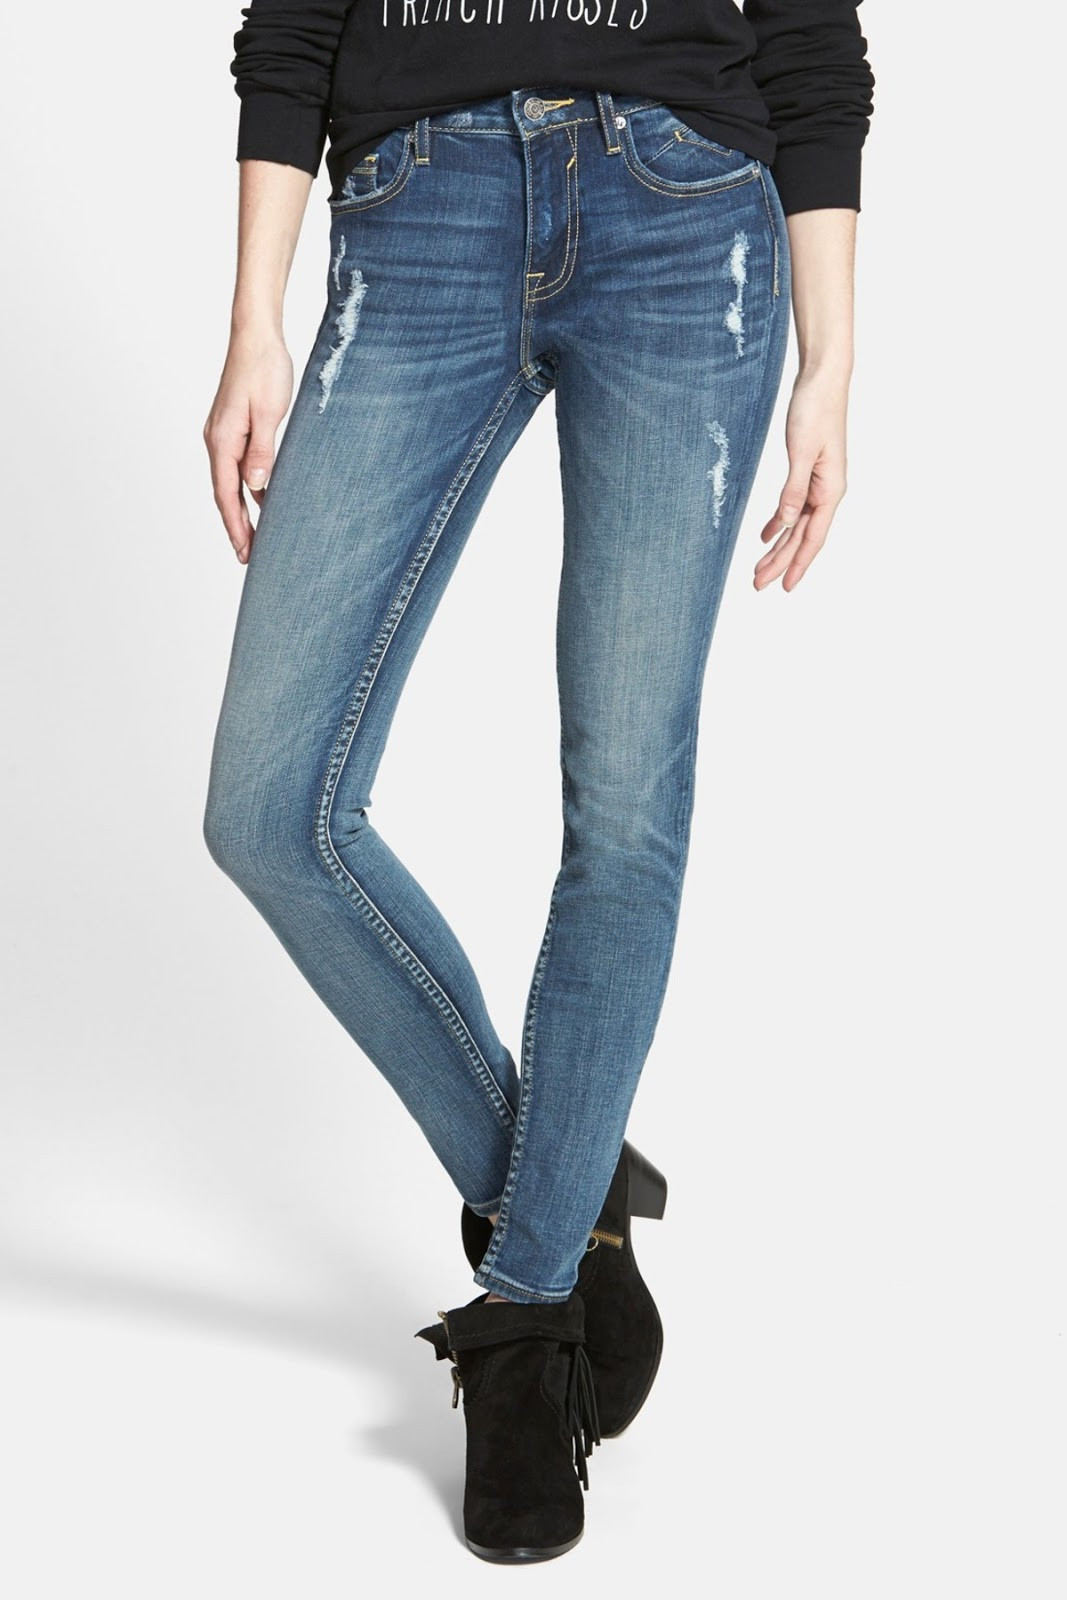 YAY for Nordstrom Rack and jeans on sale!